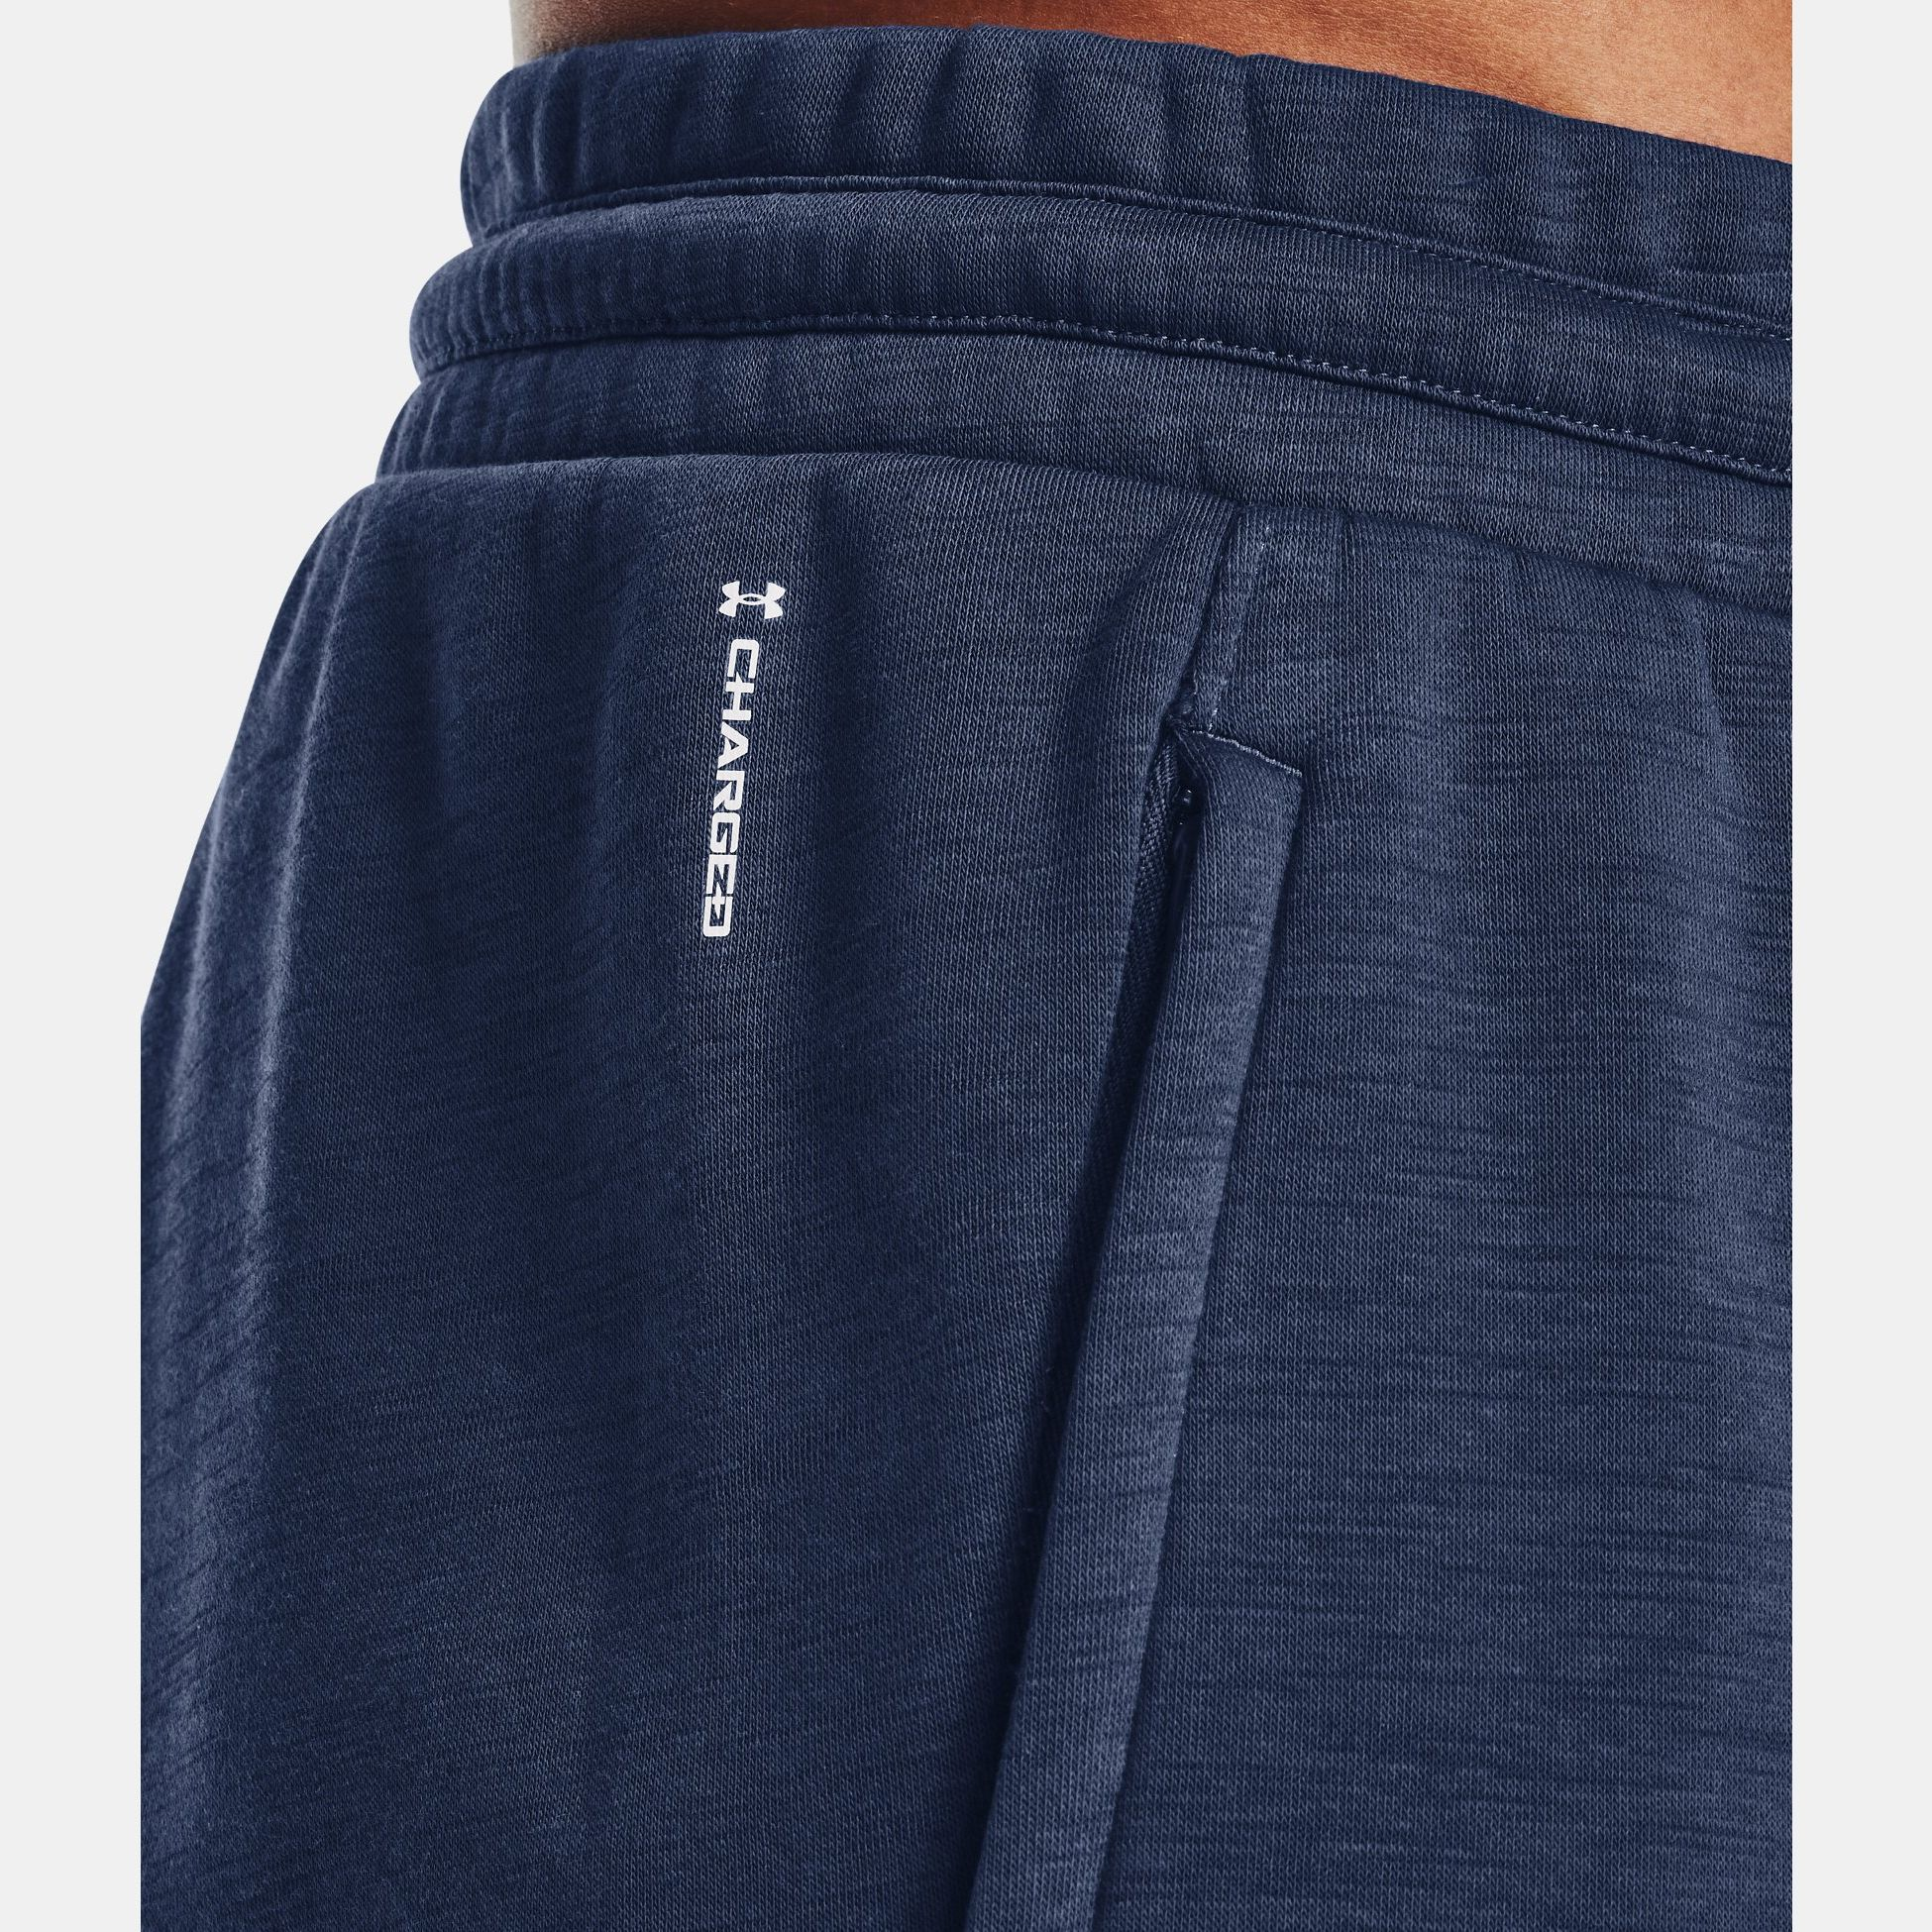 Clothing -  under armour Project Rock Charged Cotton Fleece Hoodie